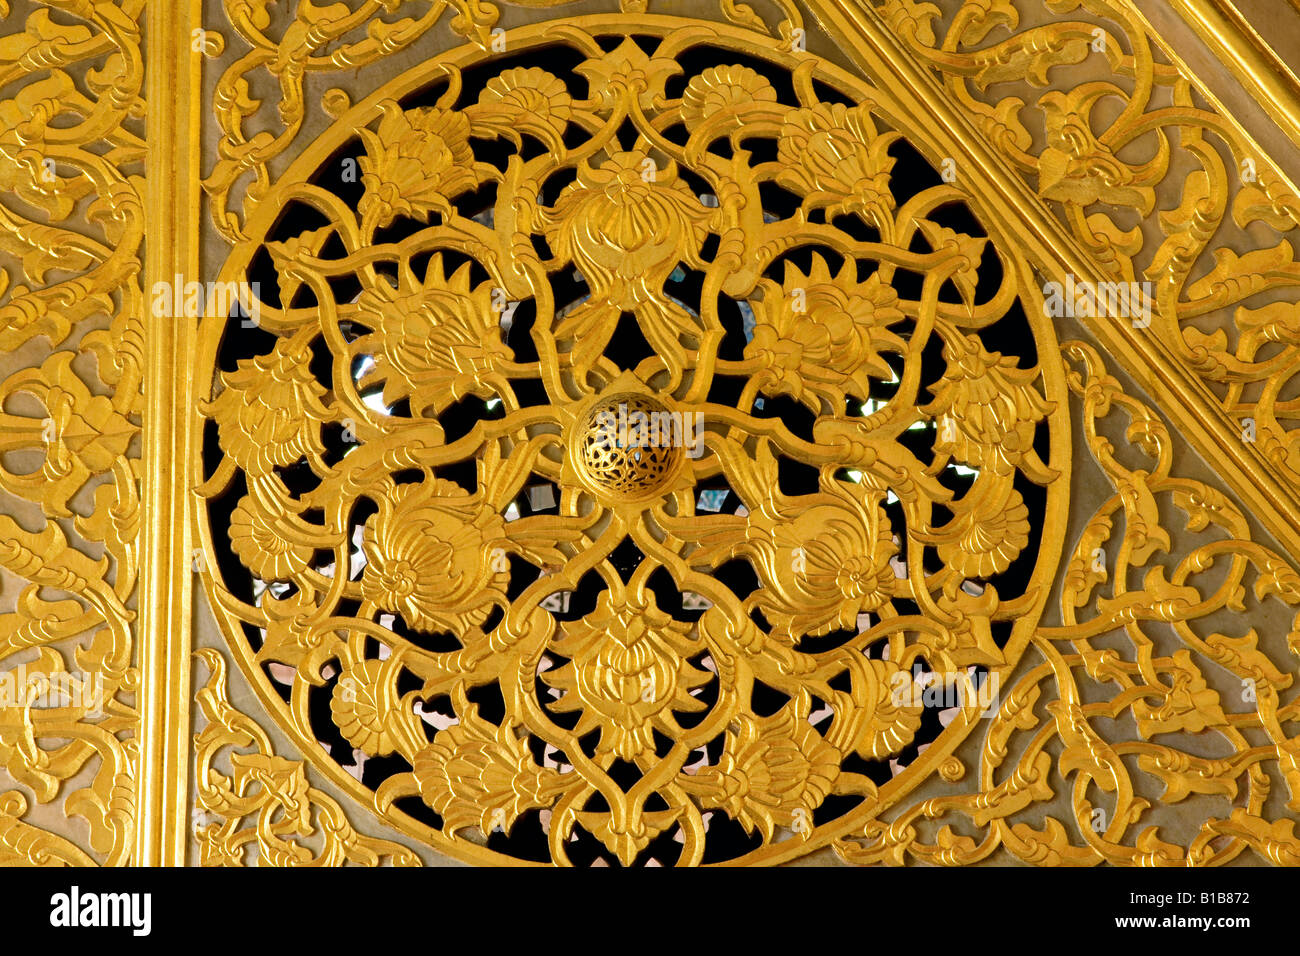 detail of the Minbar in the Blue Mosque in Istanbul - Stock Image